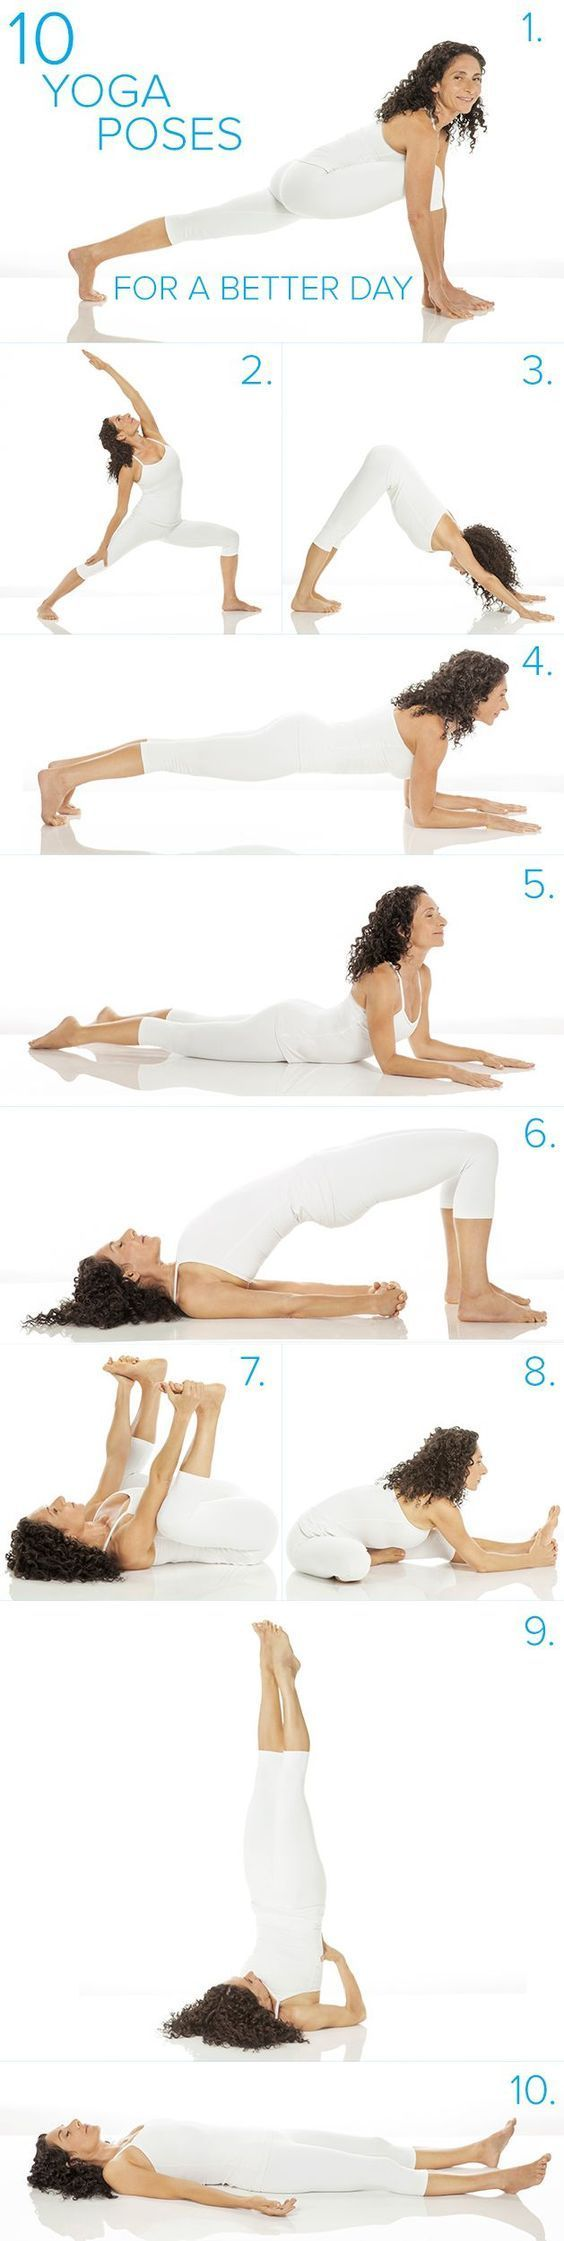 DownDog Yoga Poses for Fun & Fitness: 10-minute yoga sequence you can do anywhere